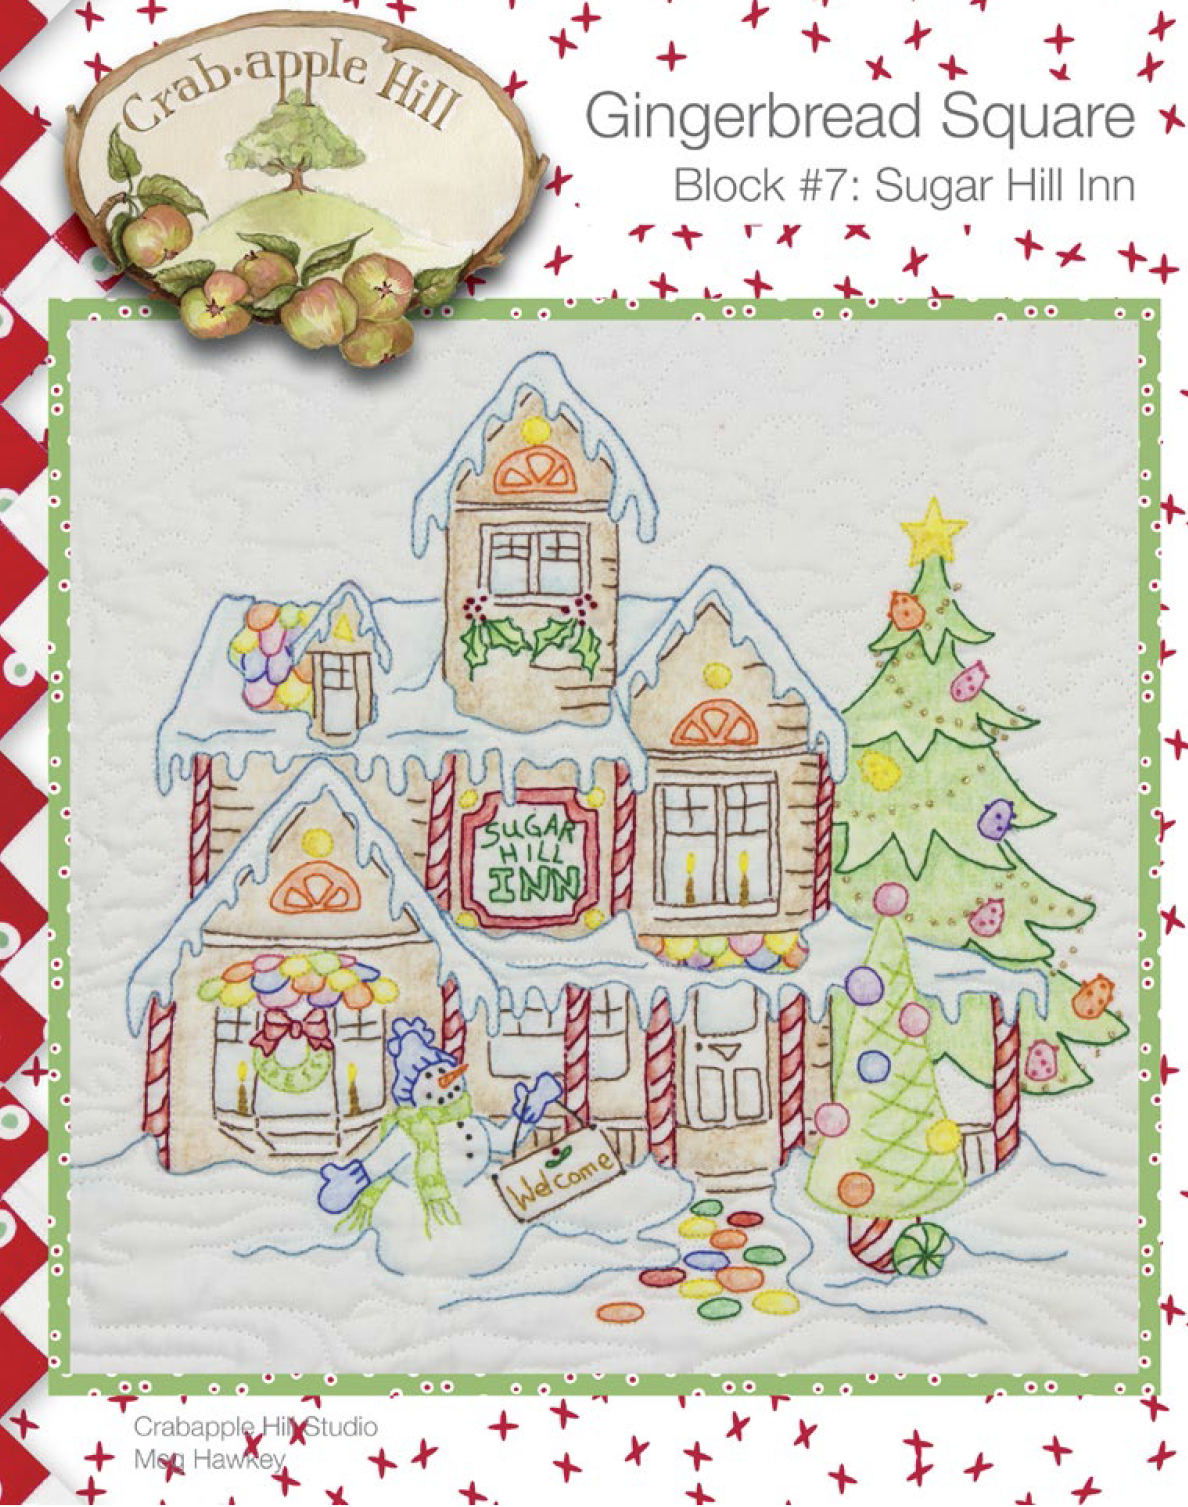 Embroidery Patterns Christmas Crabapple Hill Designs Checker News Blog